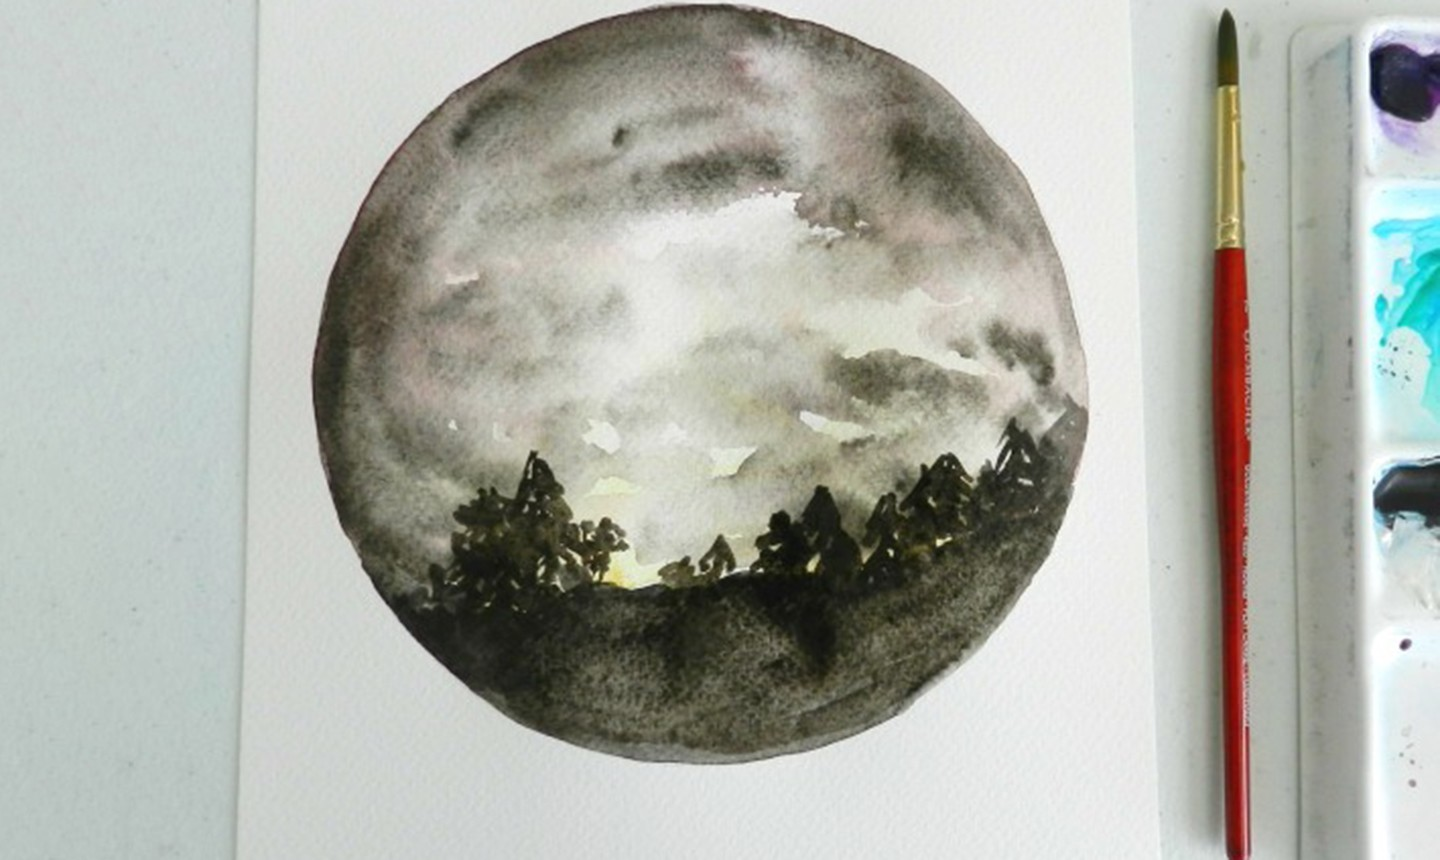 cloudy night sky watercolor painting